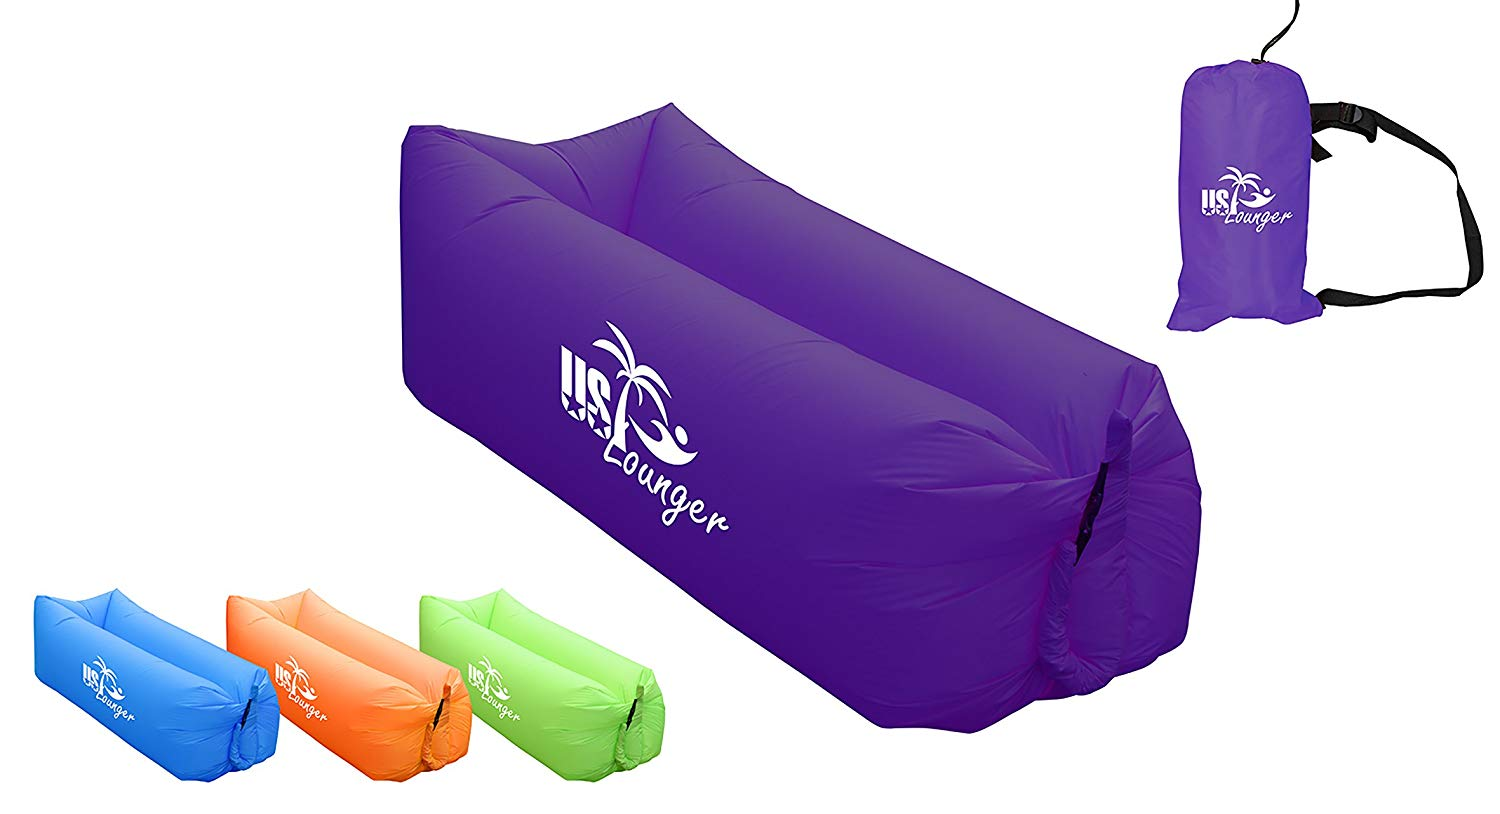 US Lounger Fast Inflatable Portable Outdoor or Indoor Wind Bed Lounger